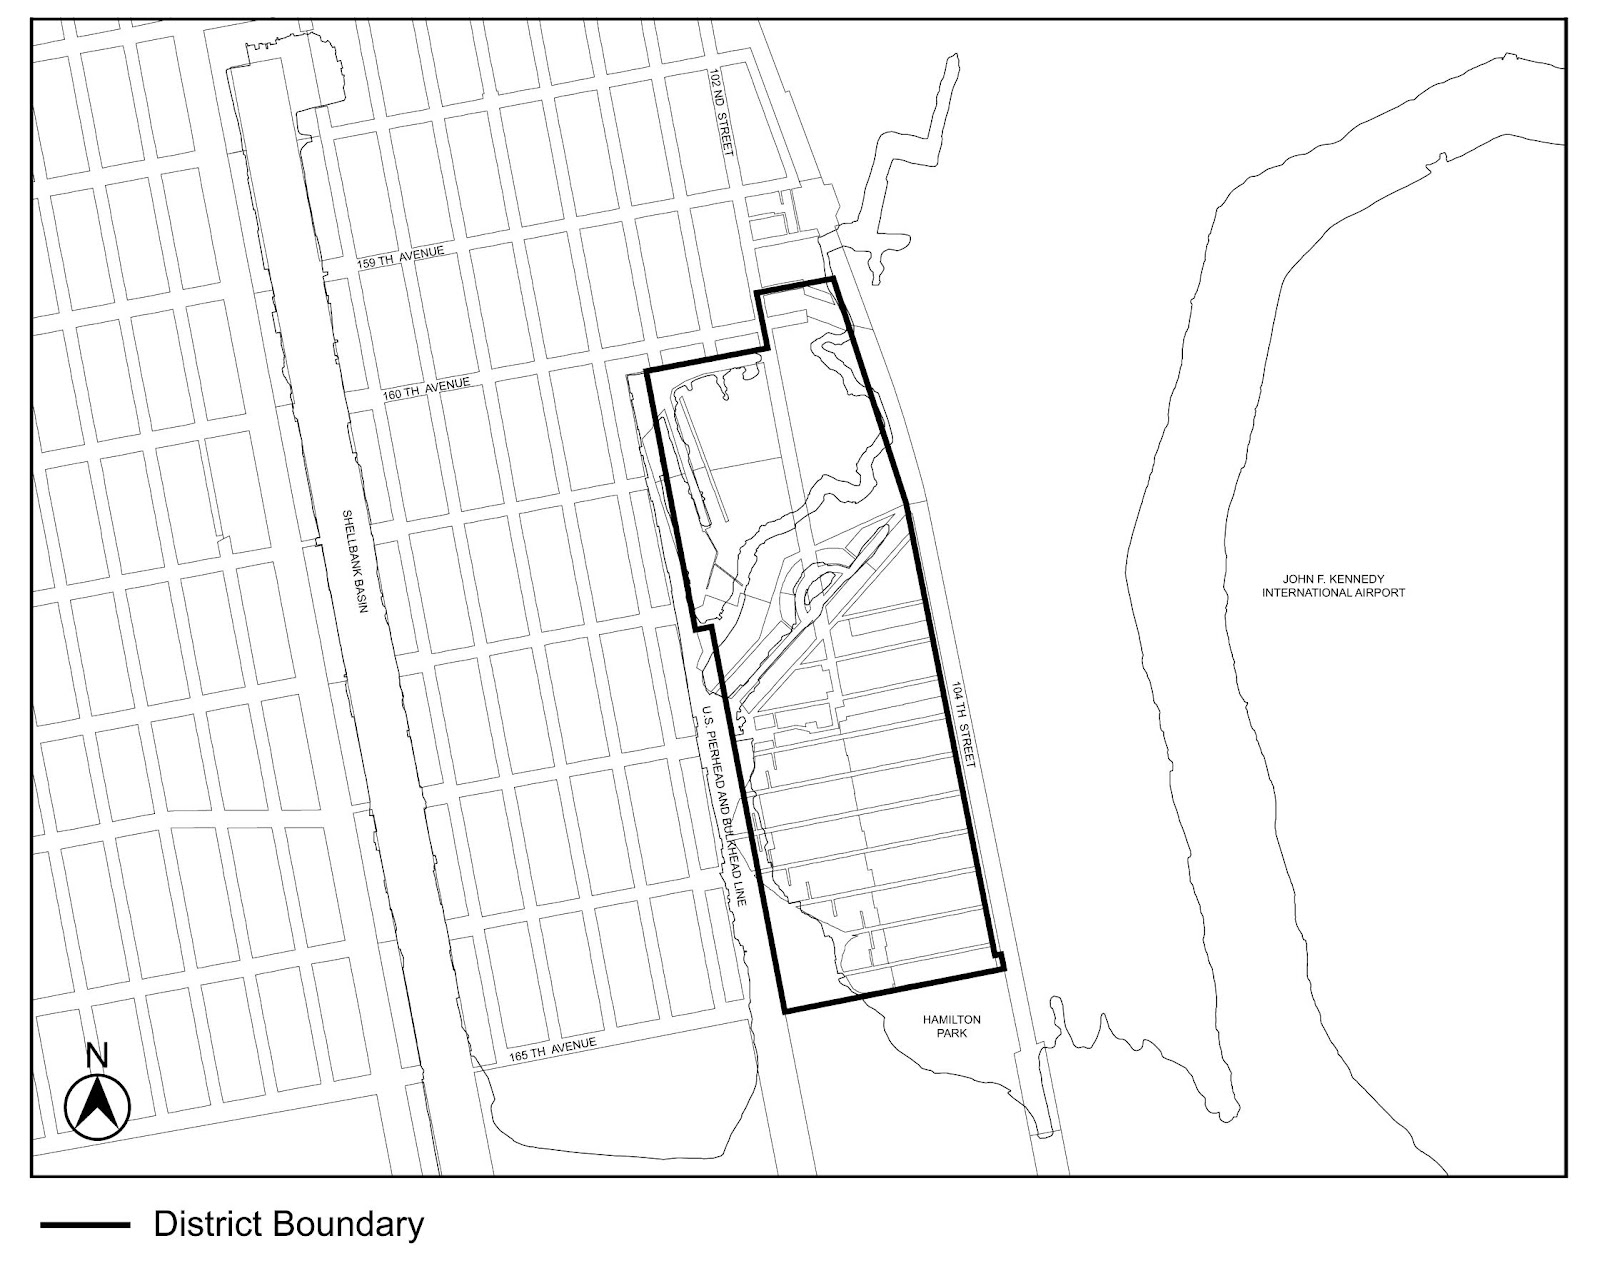 Zoning Resolutions Chapter 7: Special Coastal Risk District APPENDIX.1